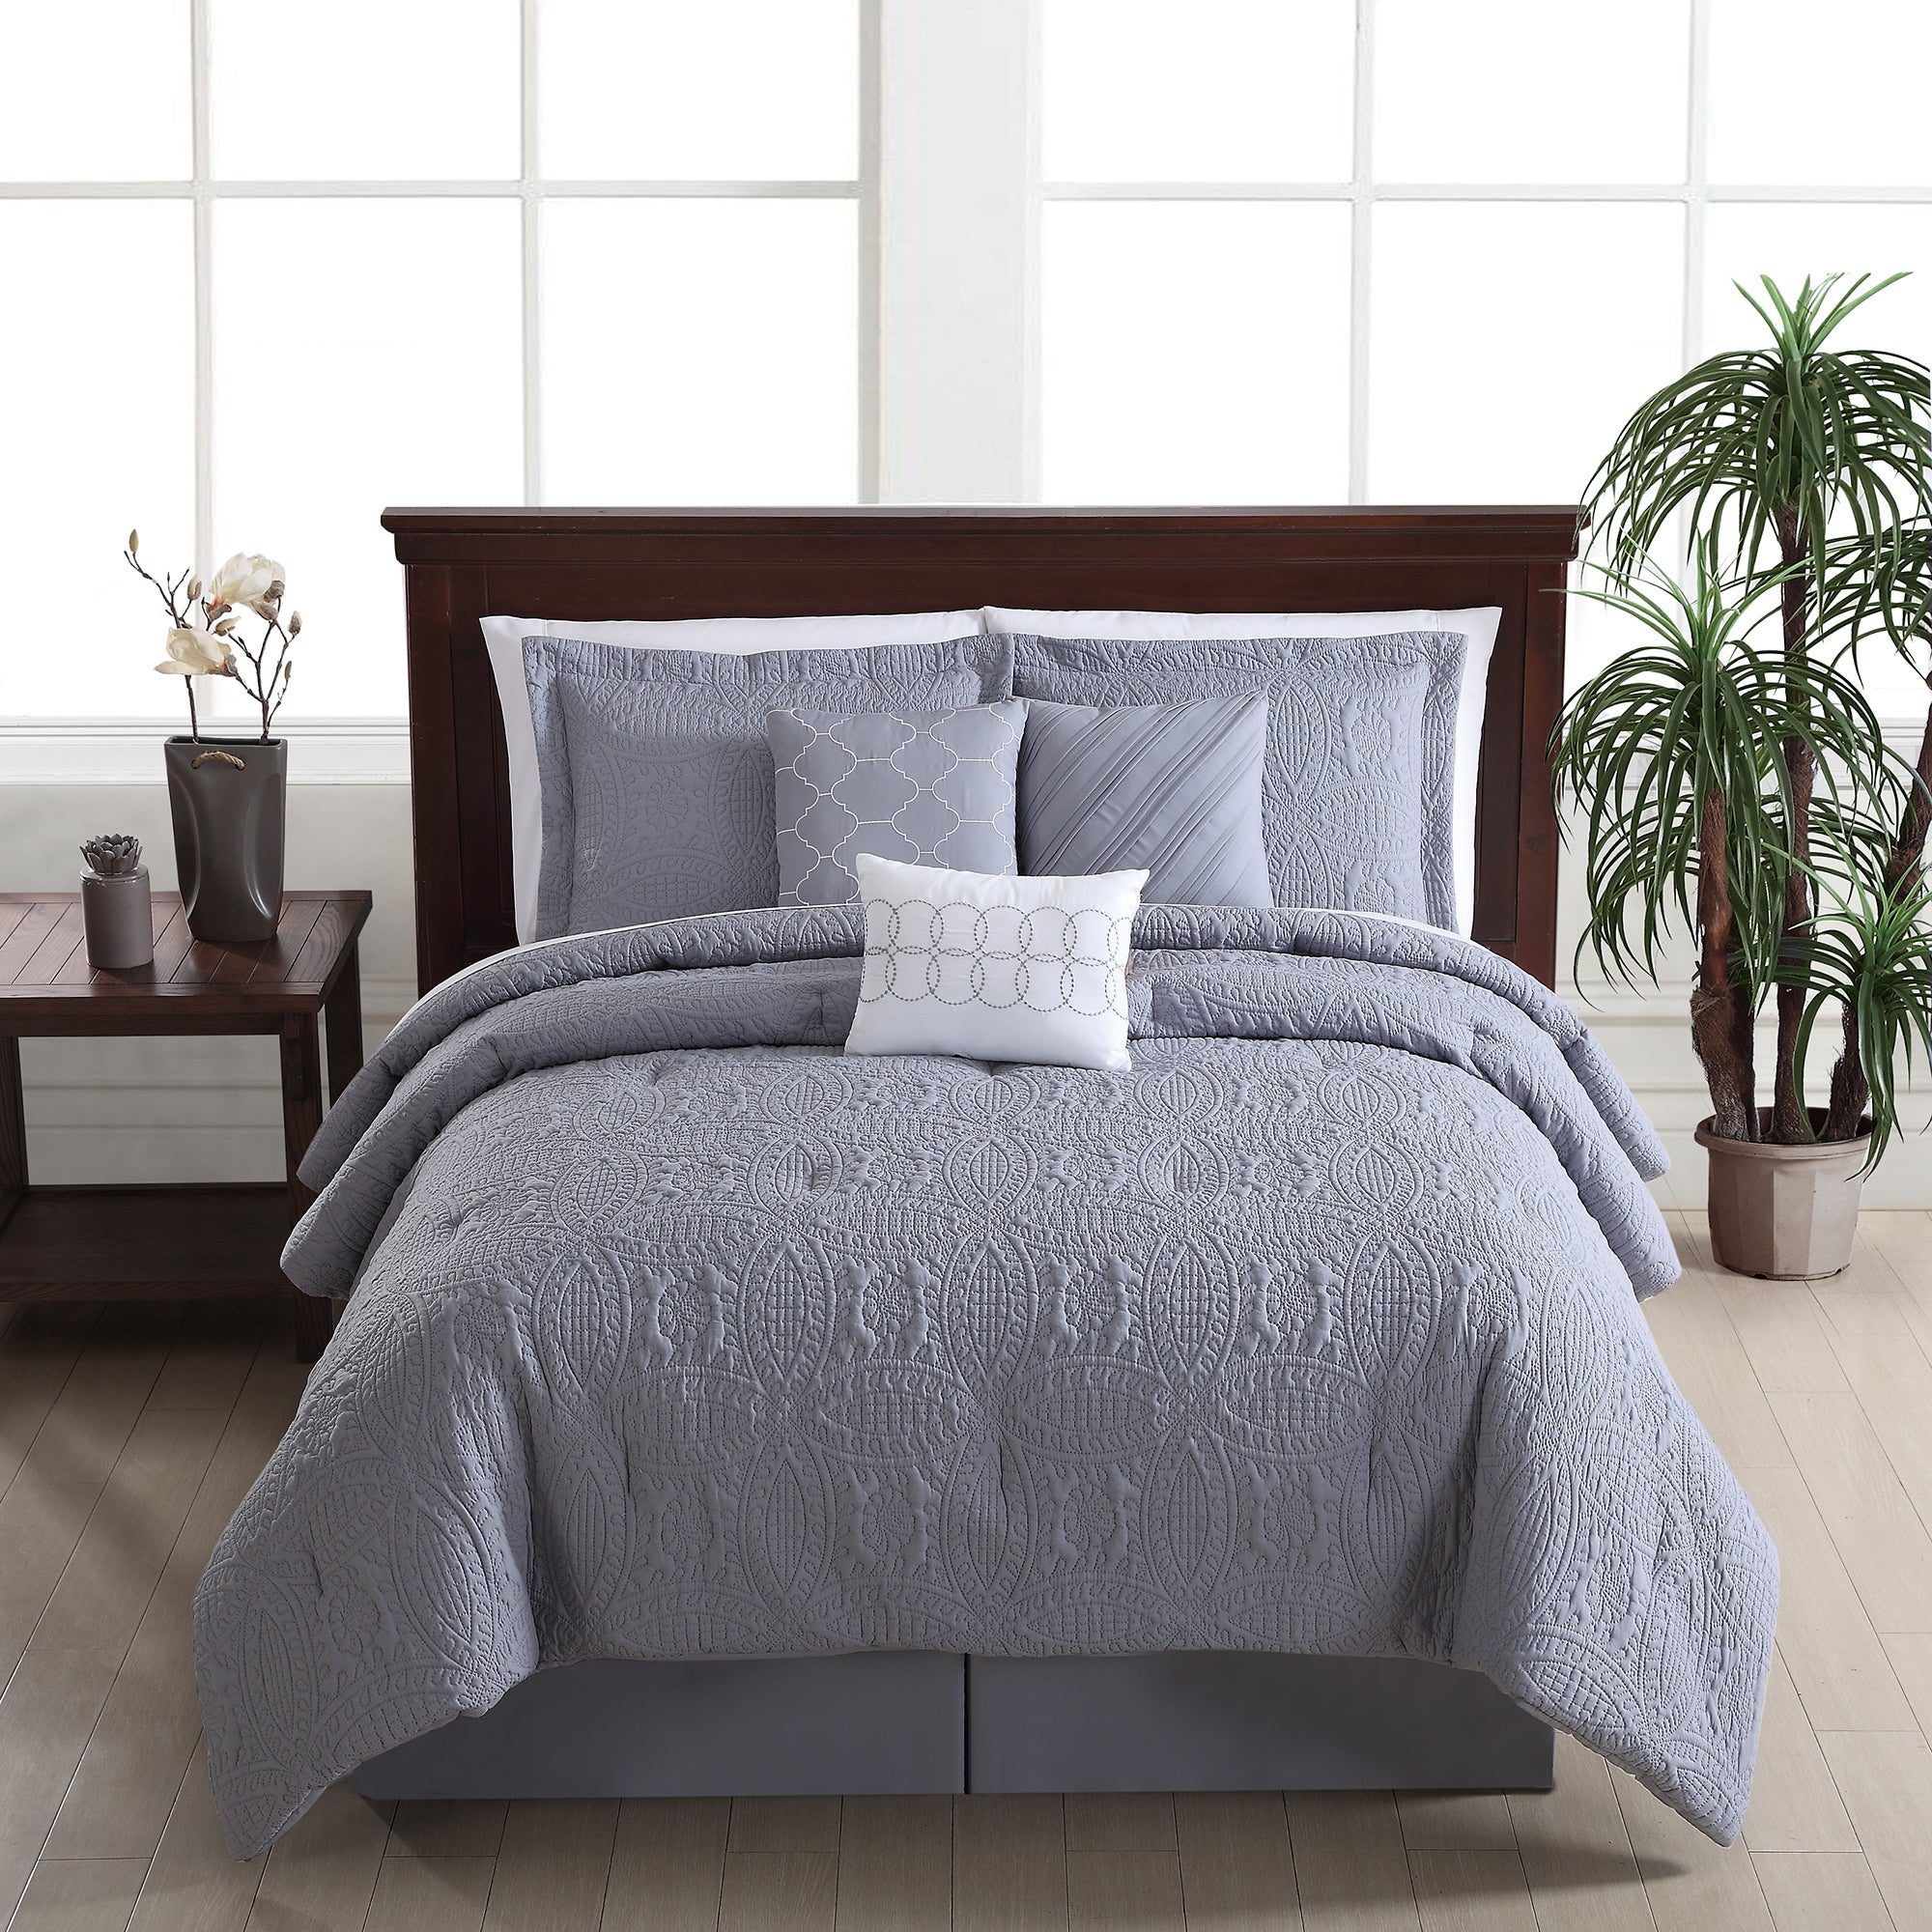 ikea catchy king california glancing tufted californi divine bed sheet beds comforter then platform with desk throughout ah teens bunk canopy plus set sheets bedding old size